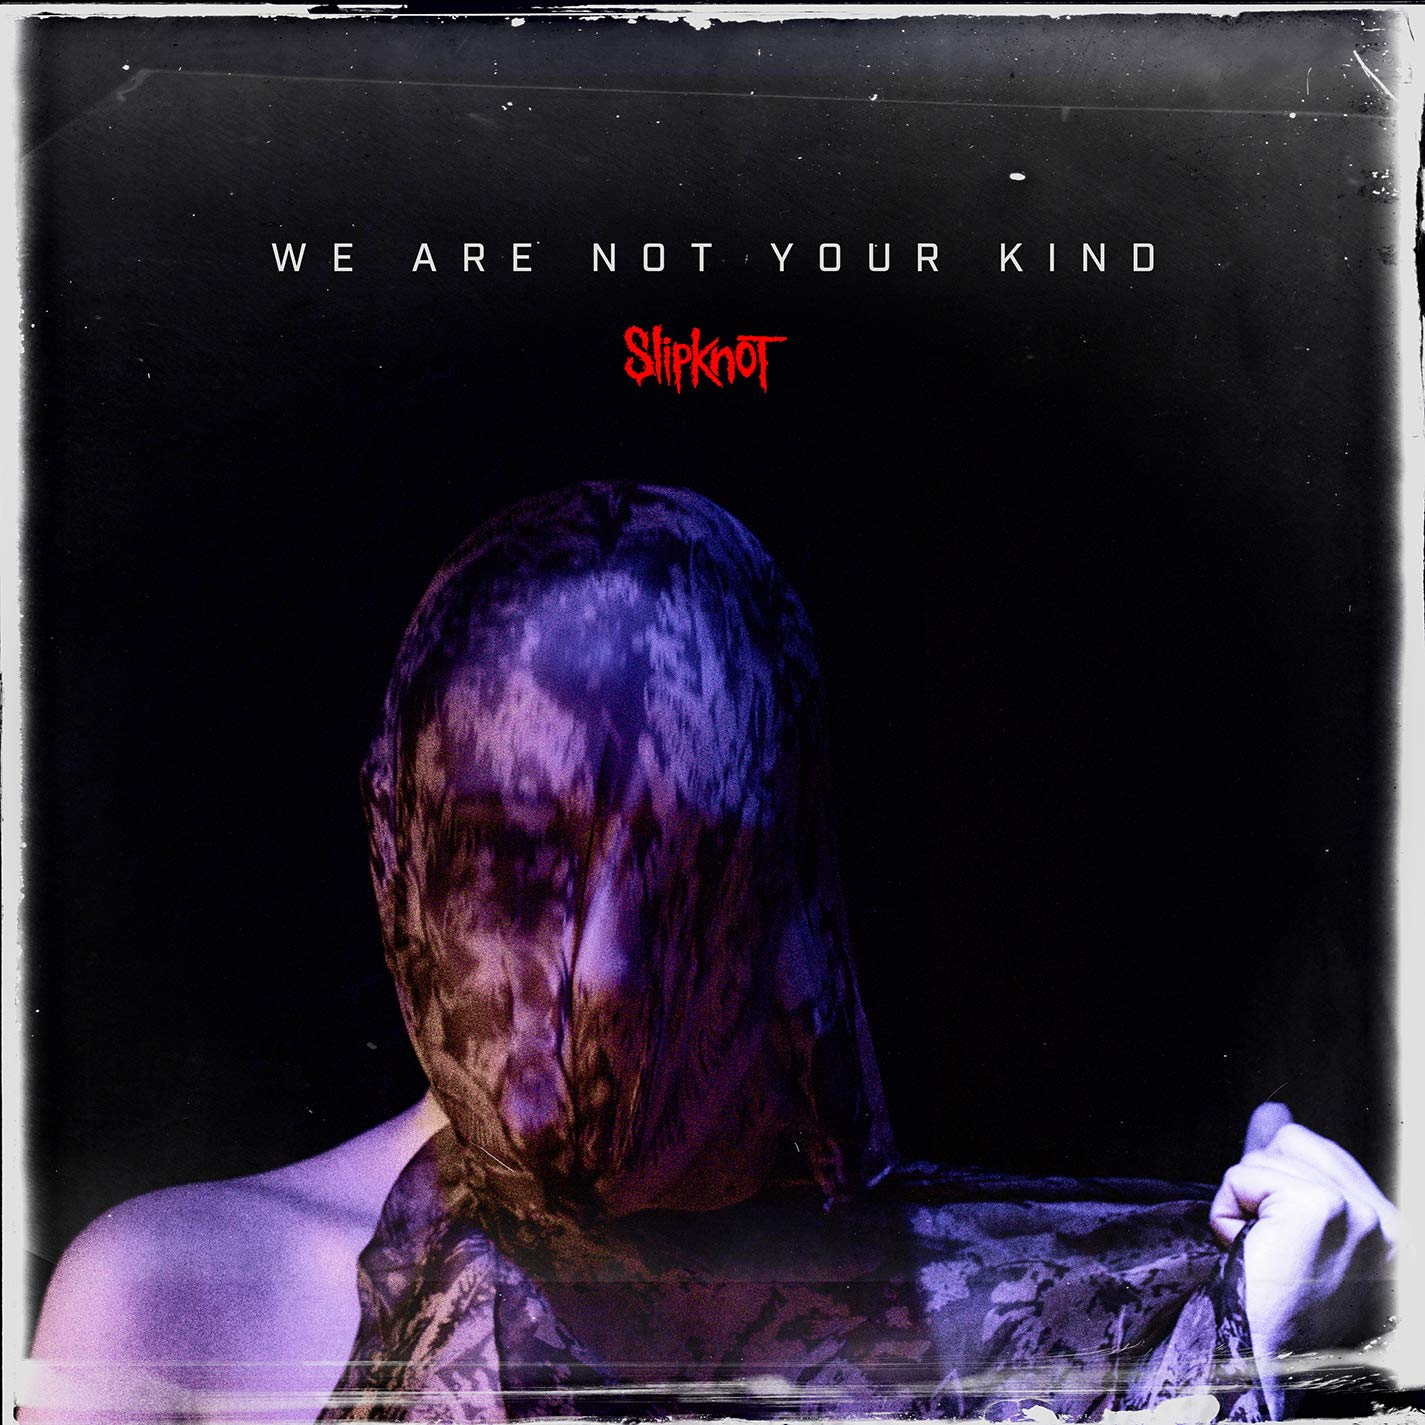 Slipknot -We Are Not Your Kind : Slipknot, Slipknot: Amazon.es: Música